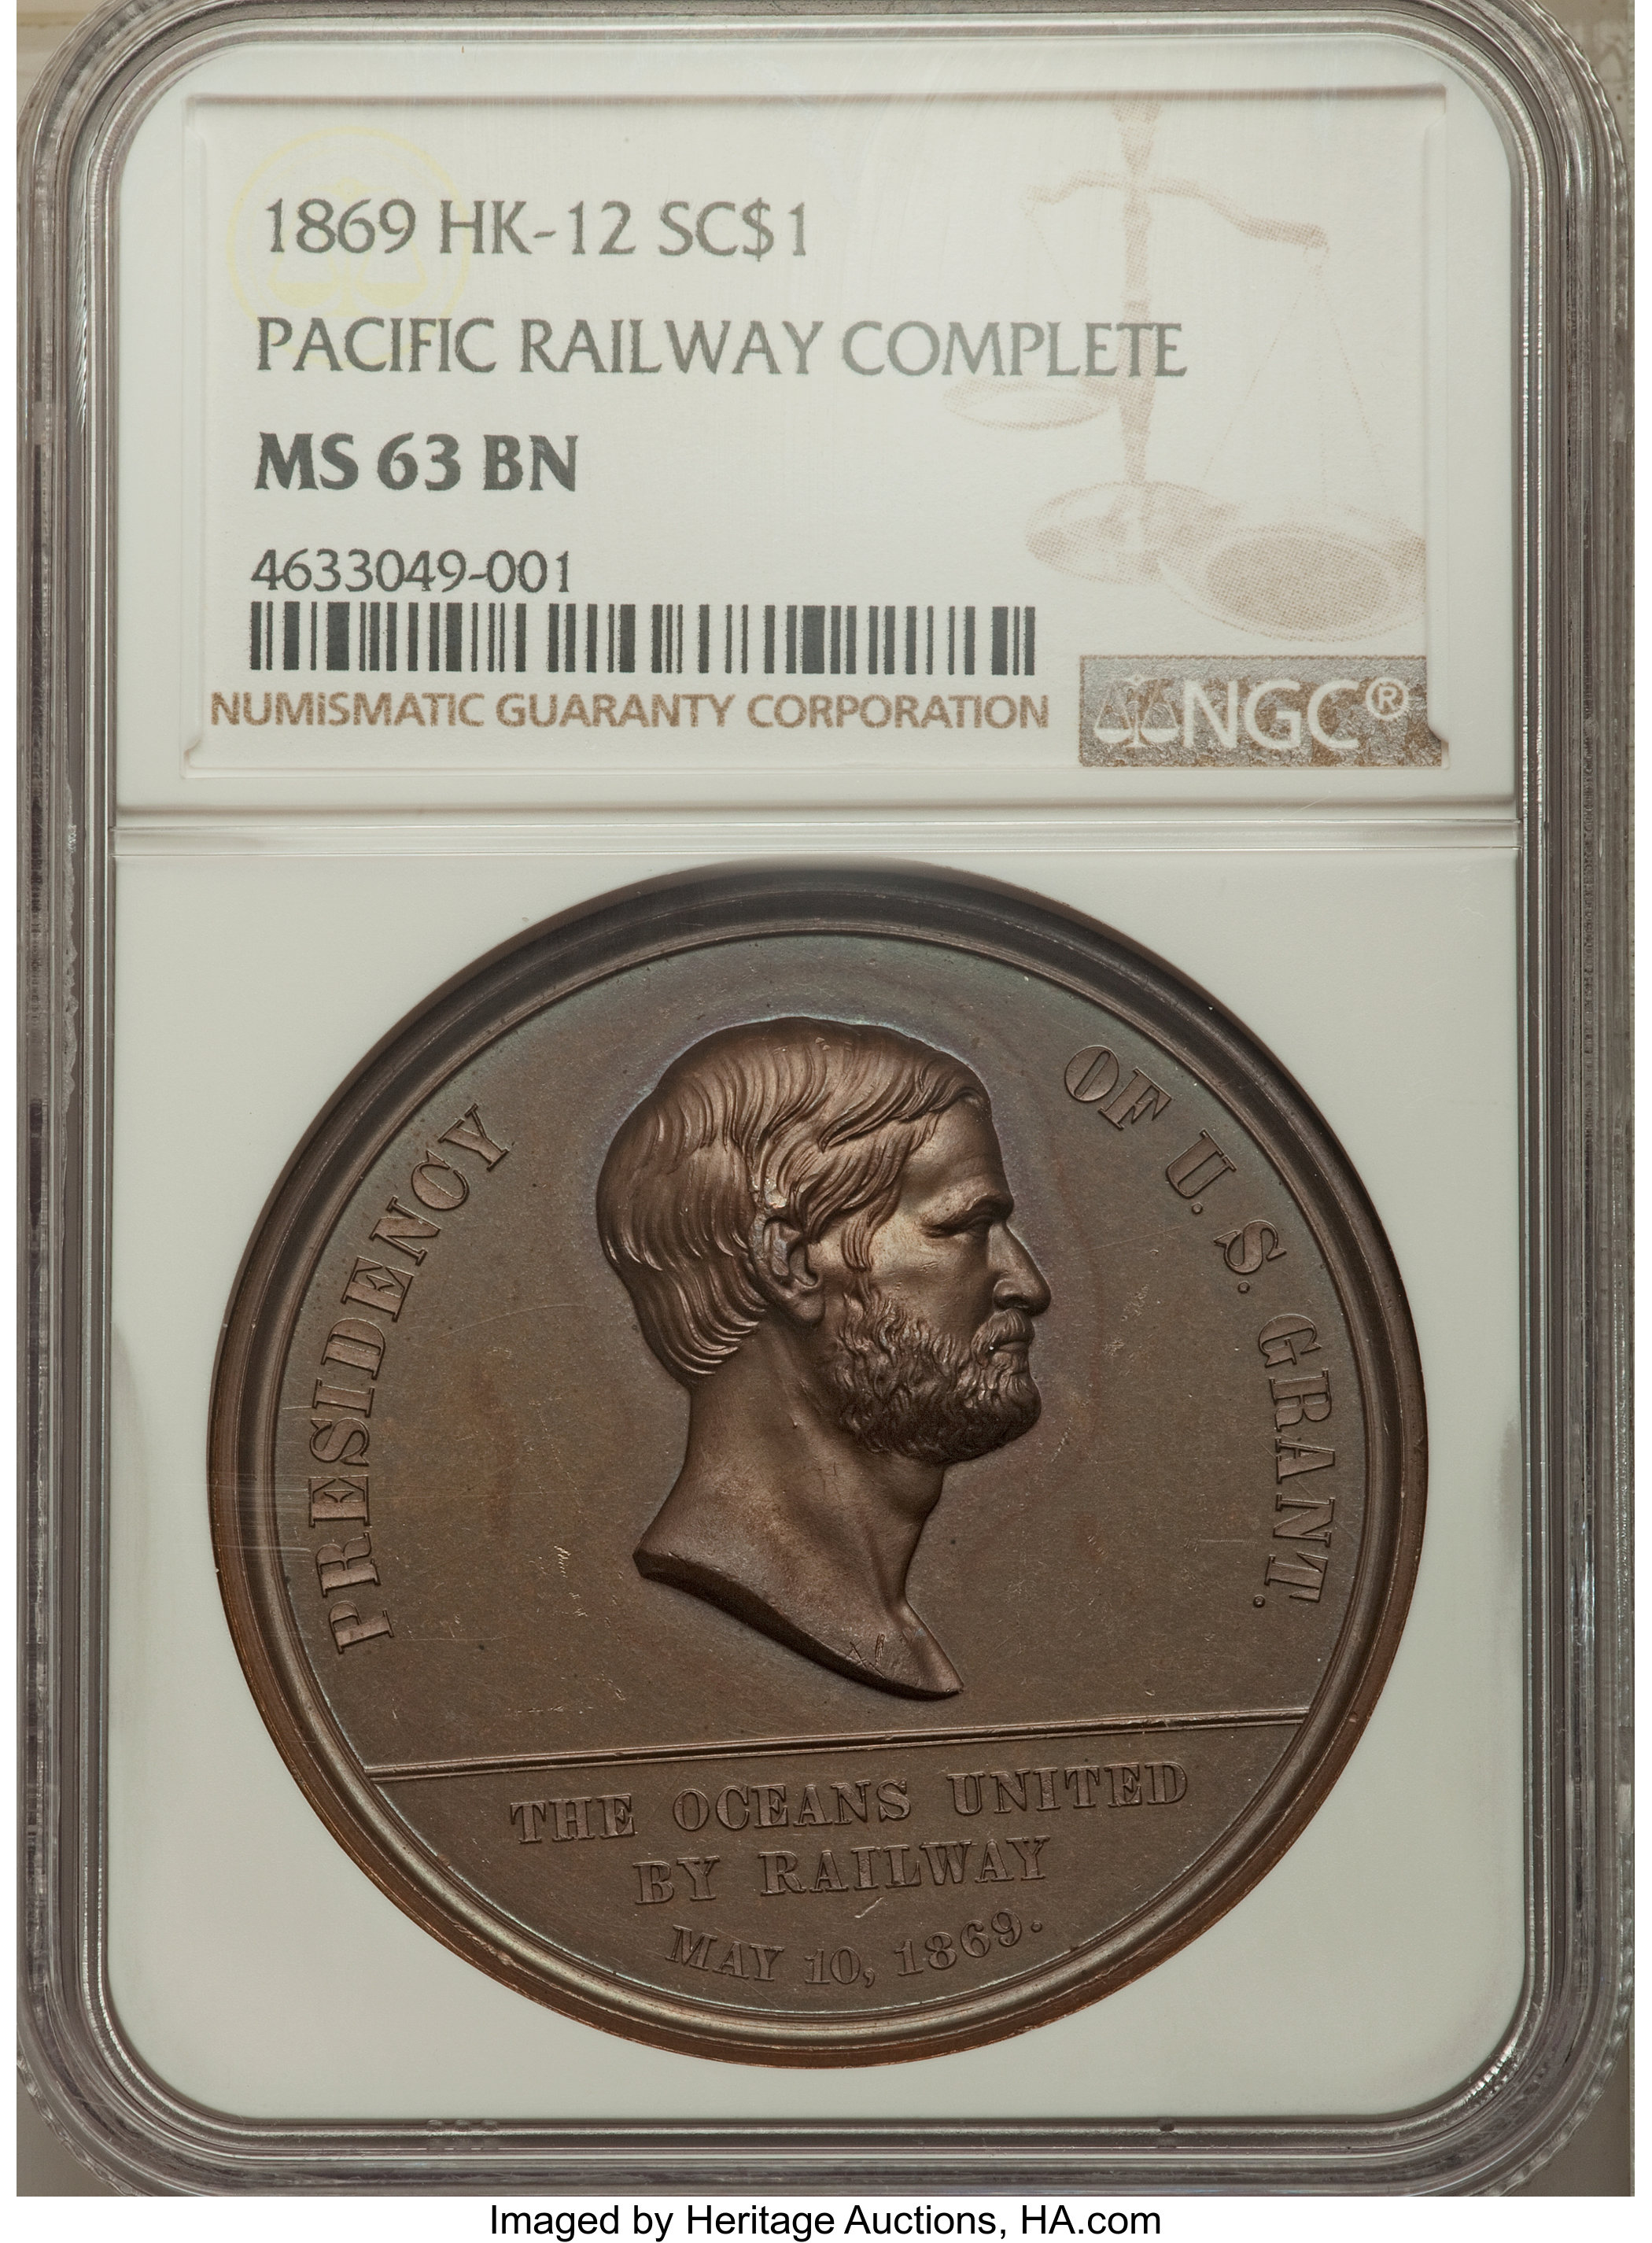 sample image for 1869 Pacific Railway, Bronze SC$1 MS BN (HK-12)